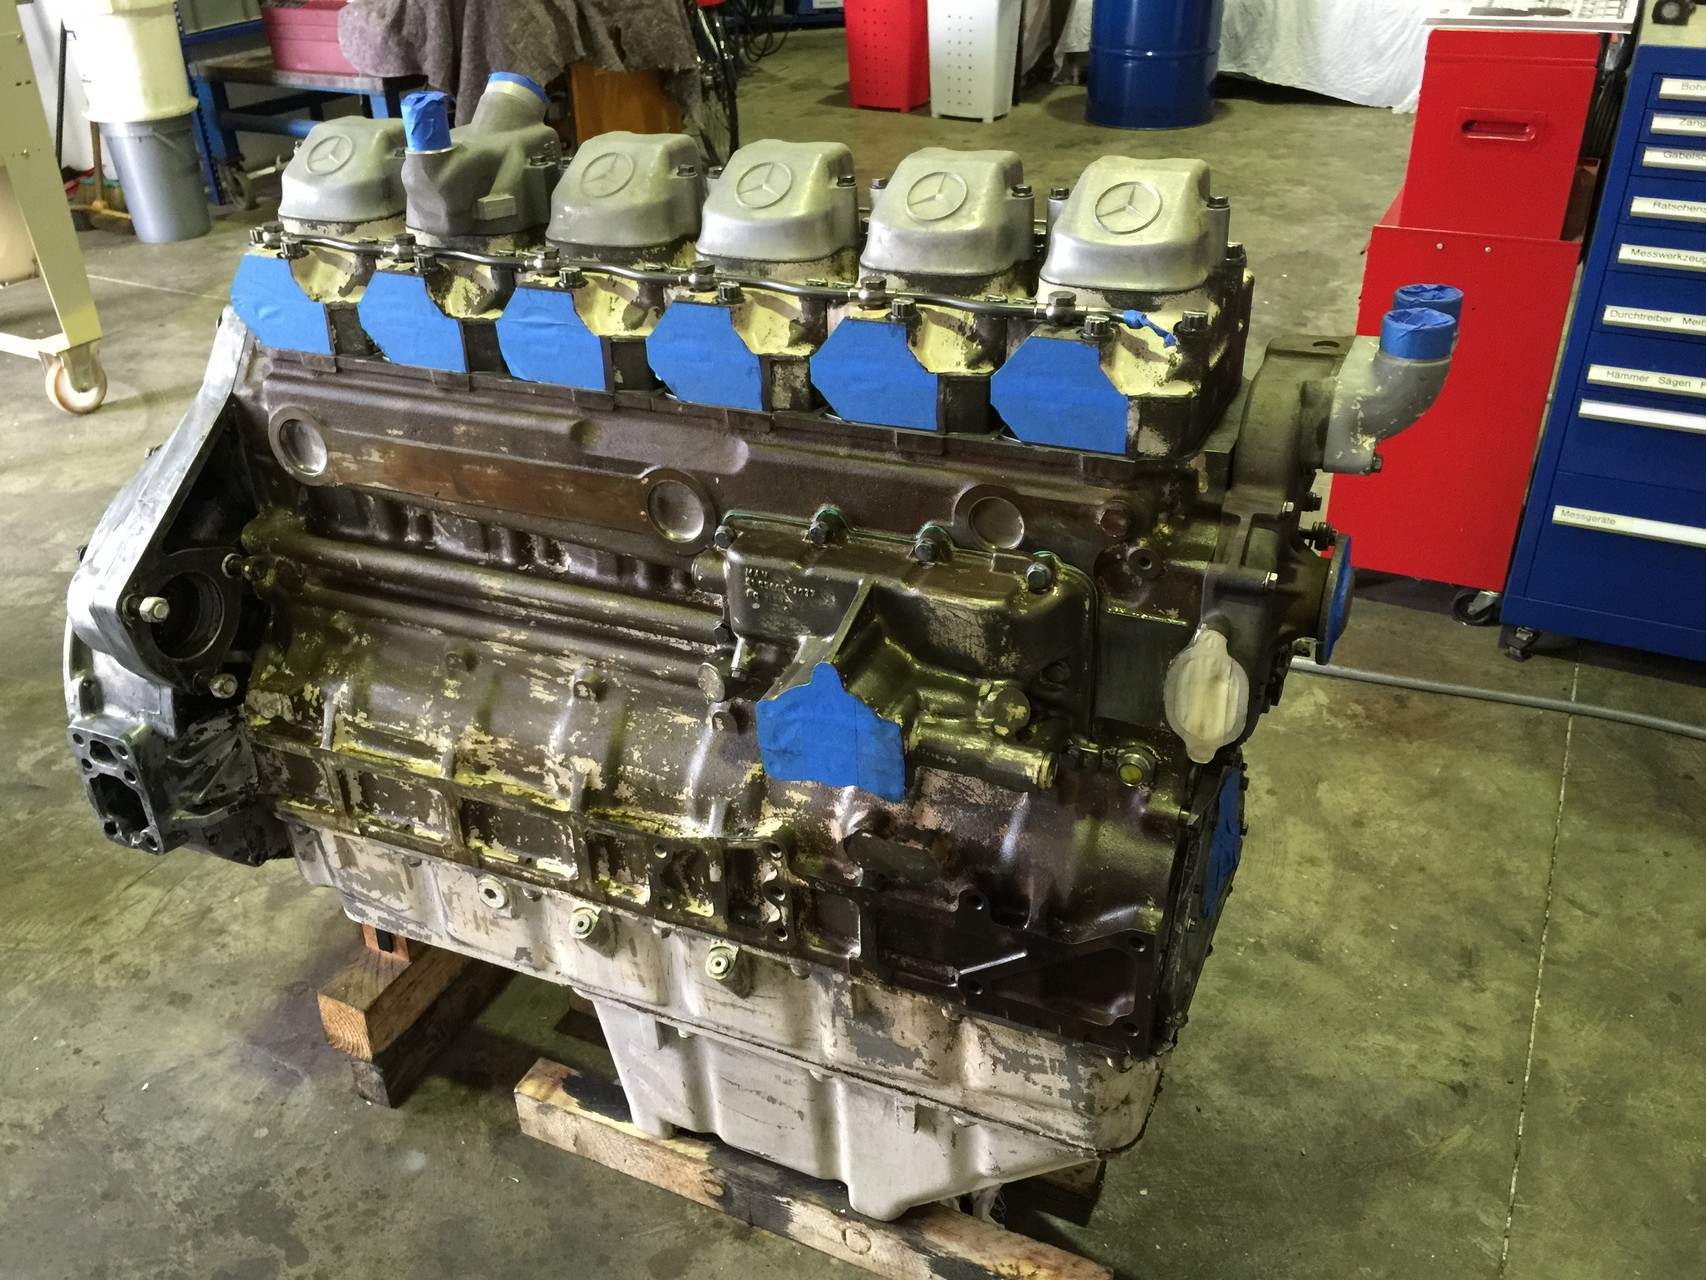 Engine block ready to paint